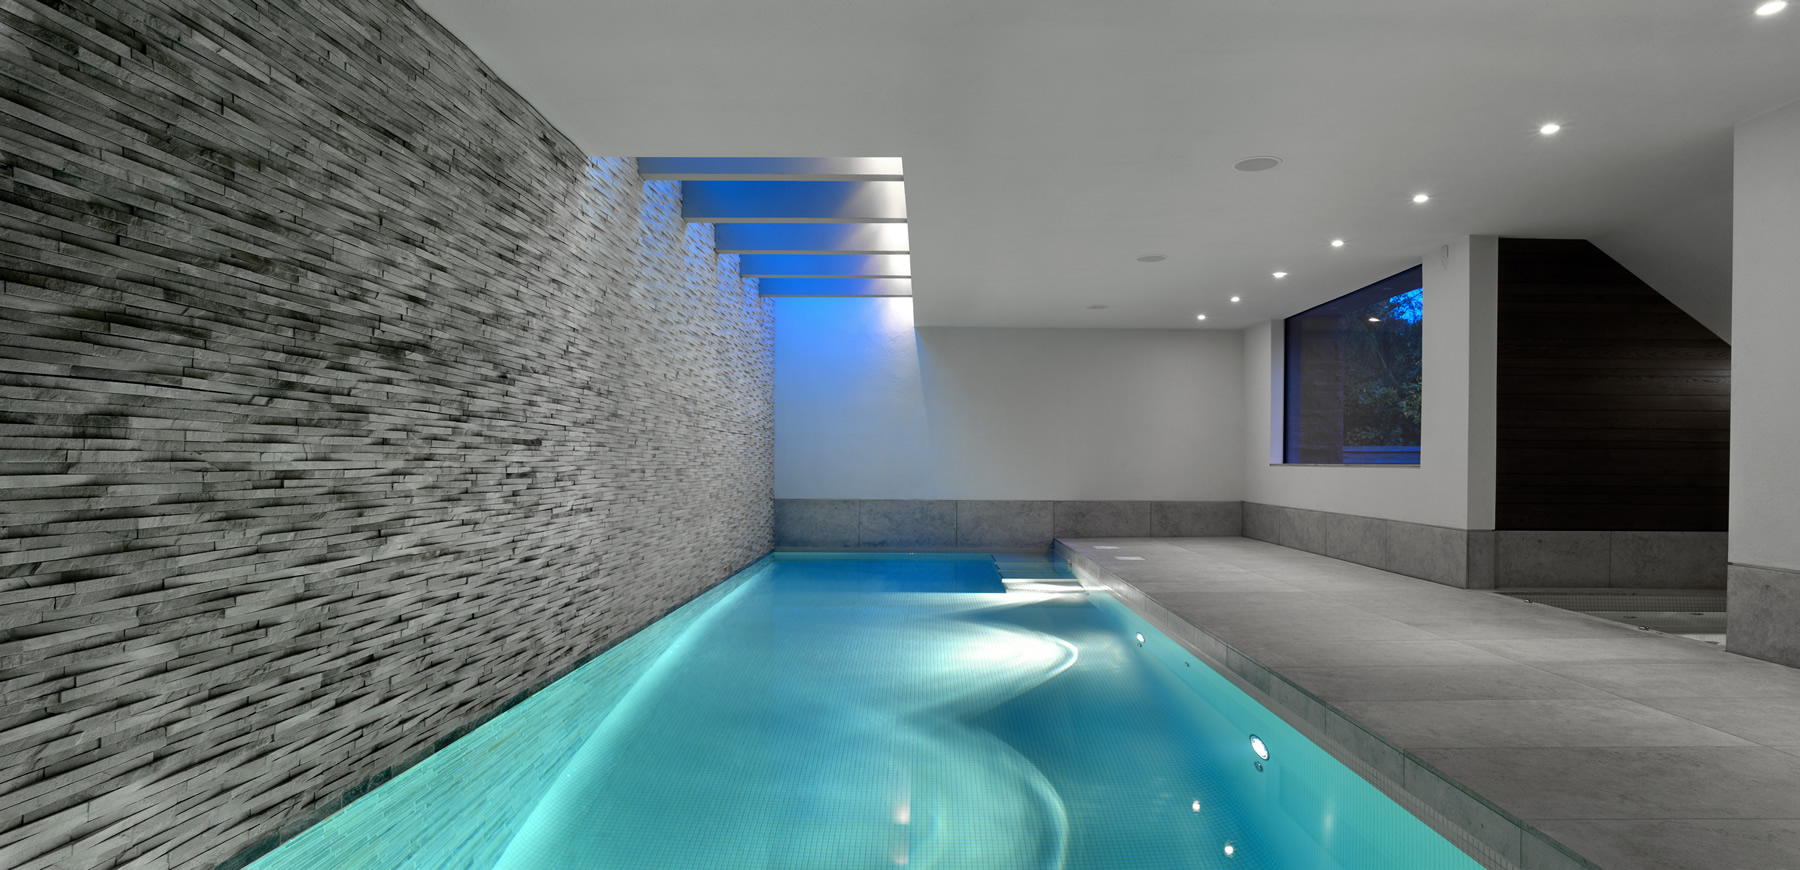 Awesome indoor swimming pool ideas 32